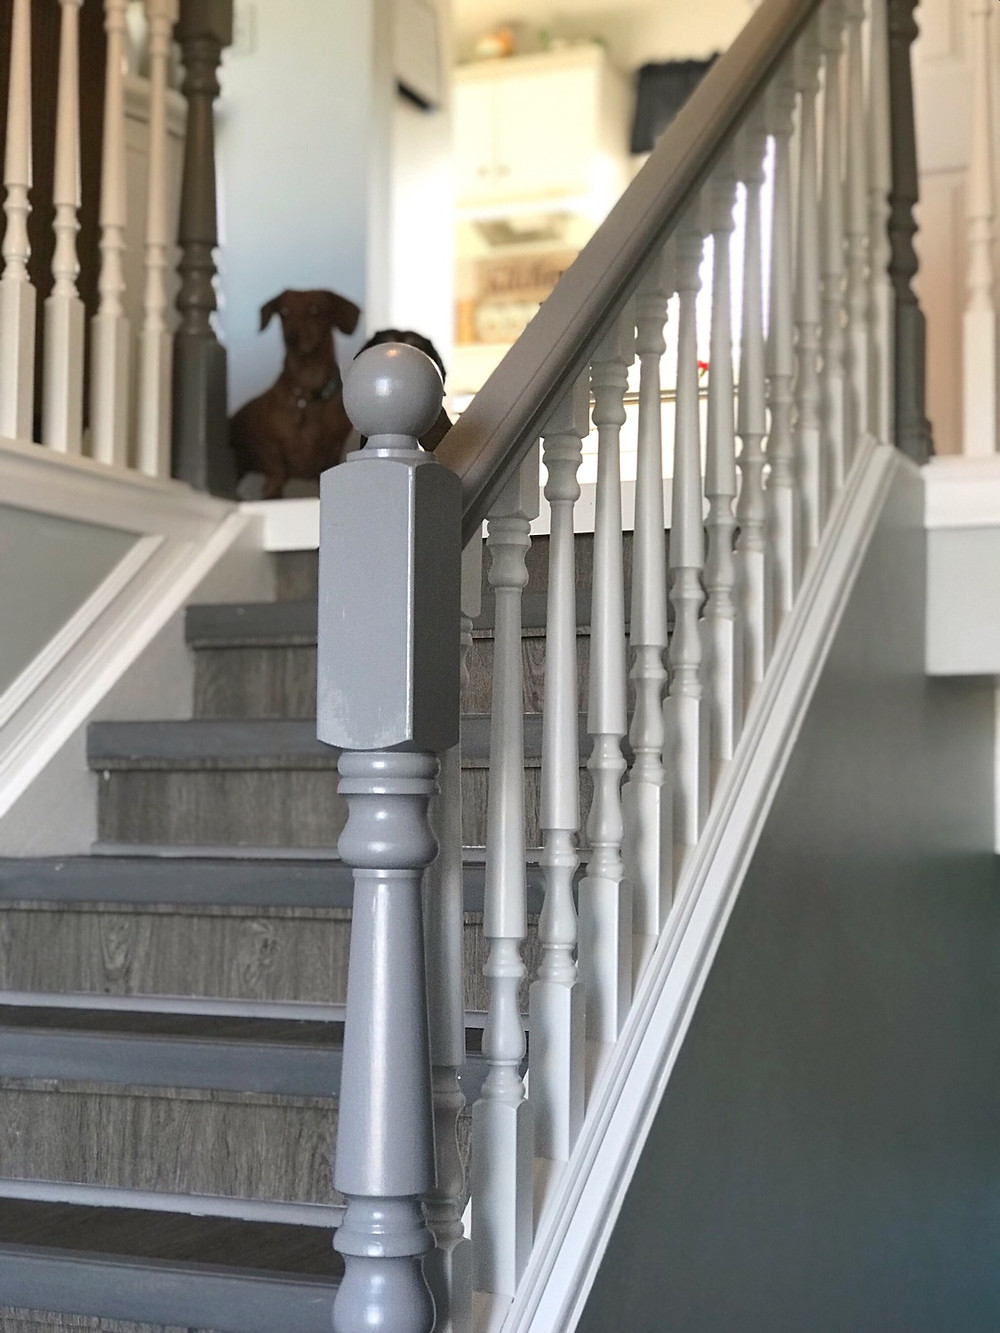 How To Paint Stair Spindles the Easy Way   After Painting Oak Spindles